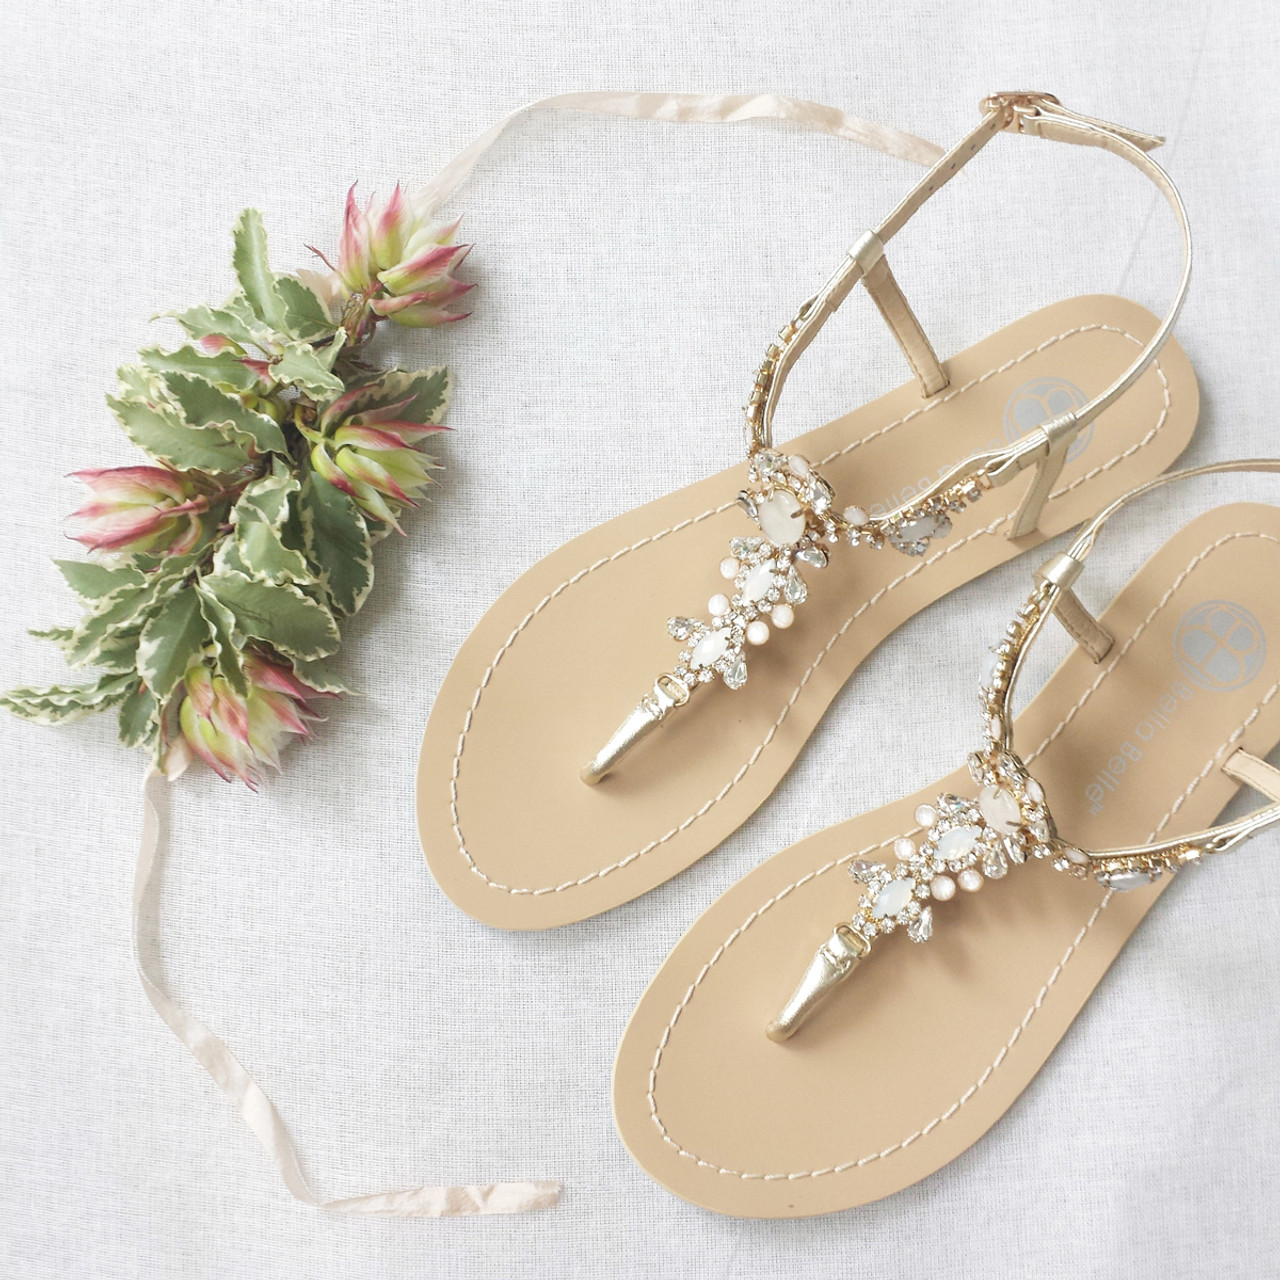 7383f69b4 Thong sandal Vintage-inspired rows of crystal jewels and white onyx-like  stones Jewels